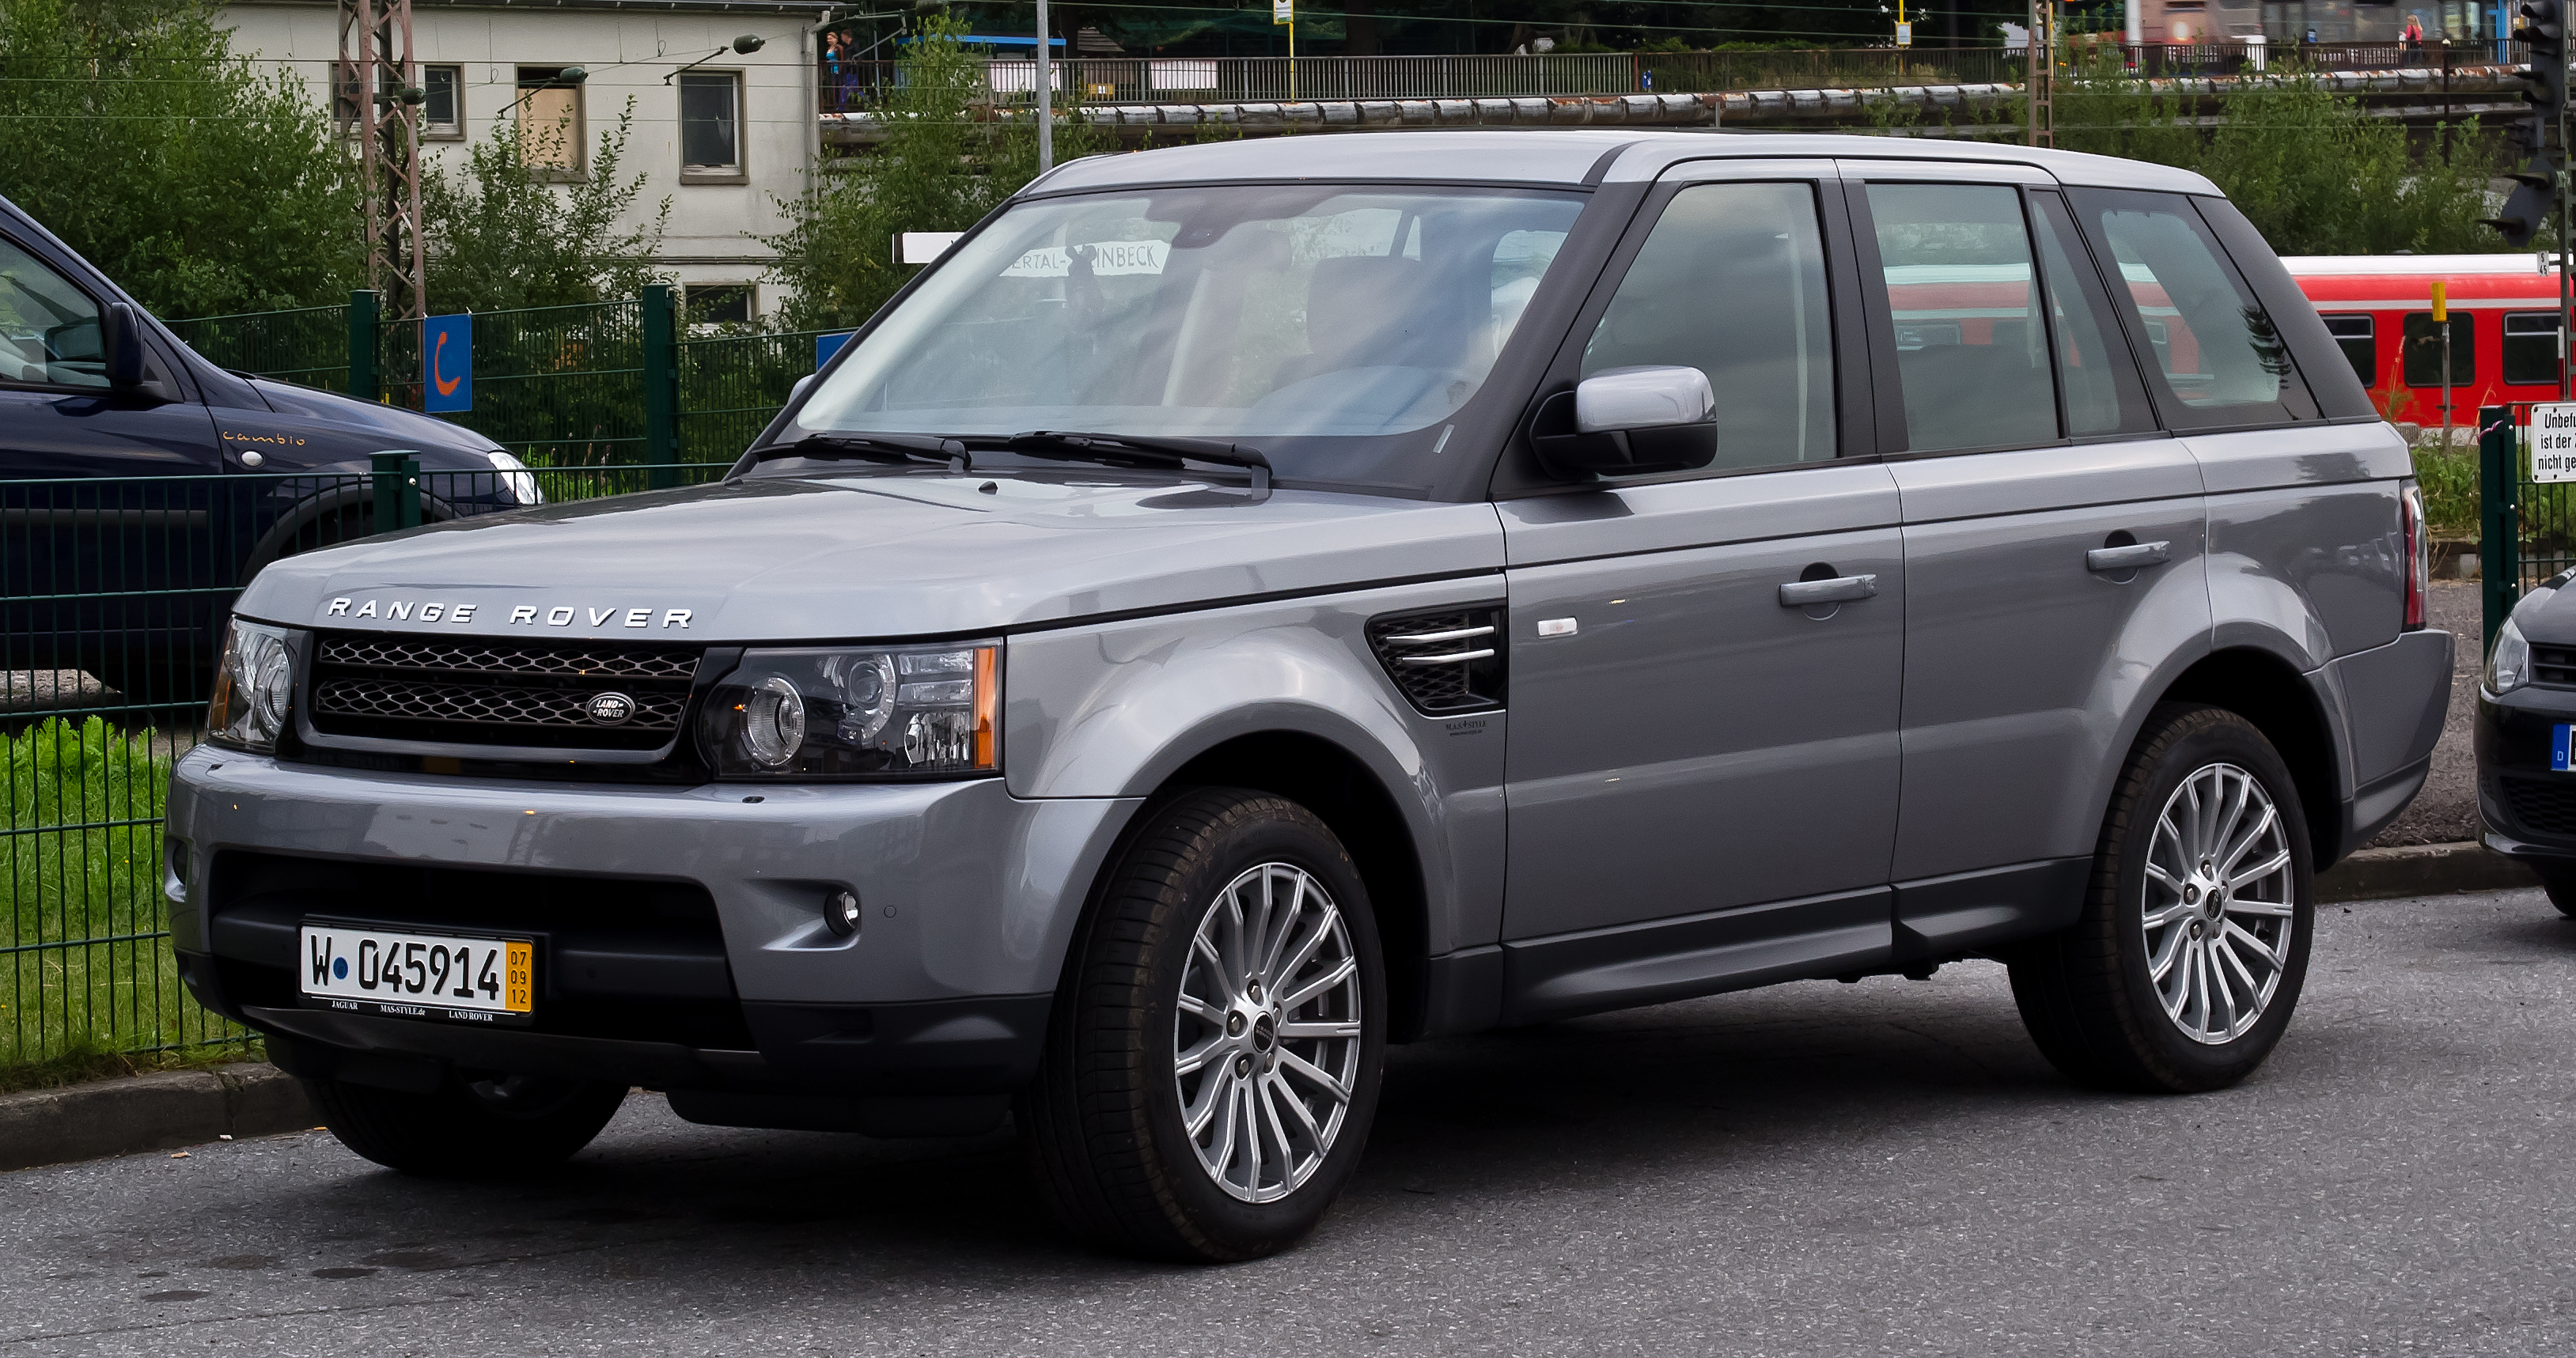 range rover sport wiki everipedia. Black Bedroom Furniture Sets. Home Design Ideas